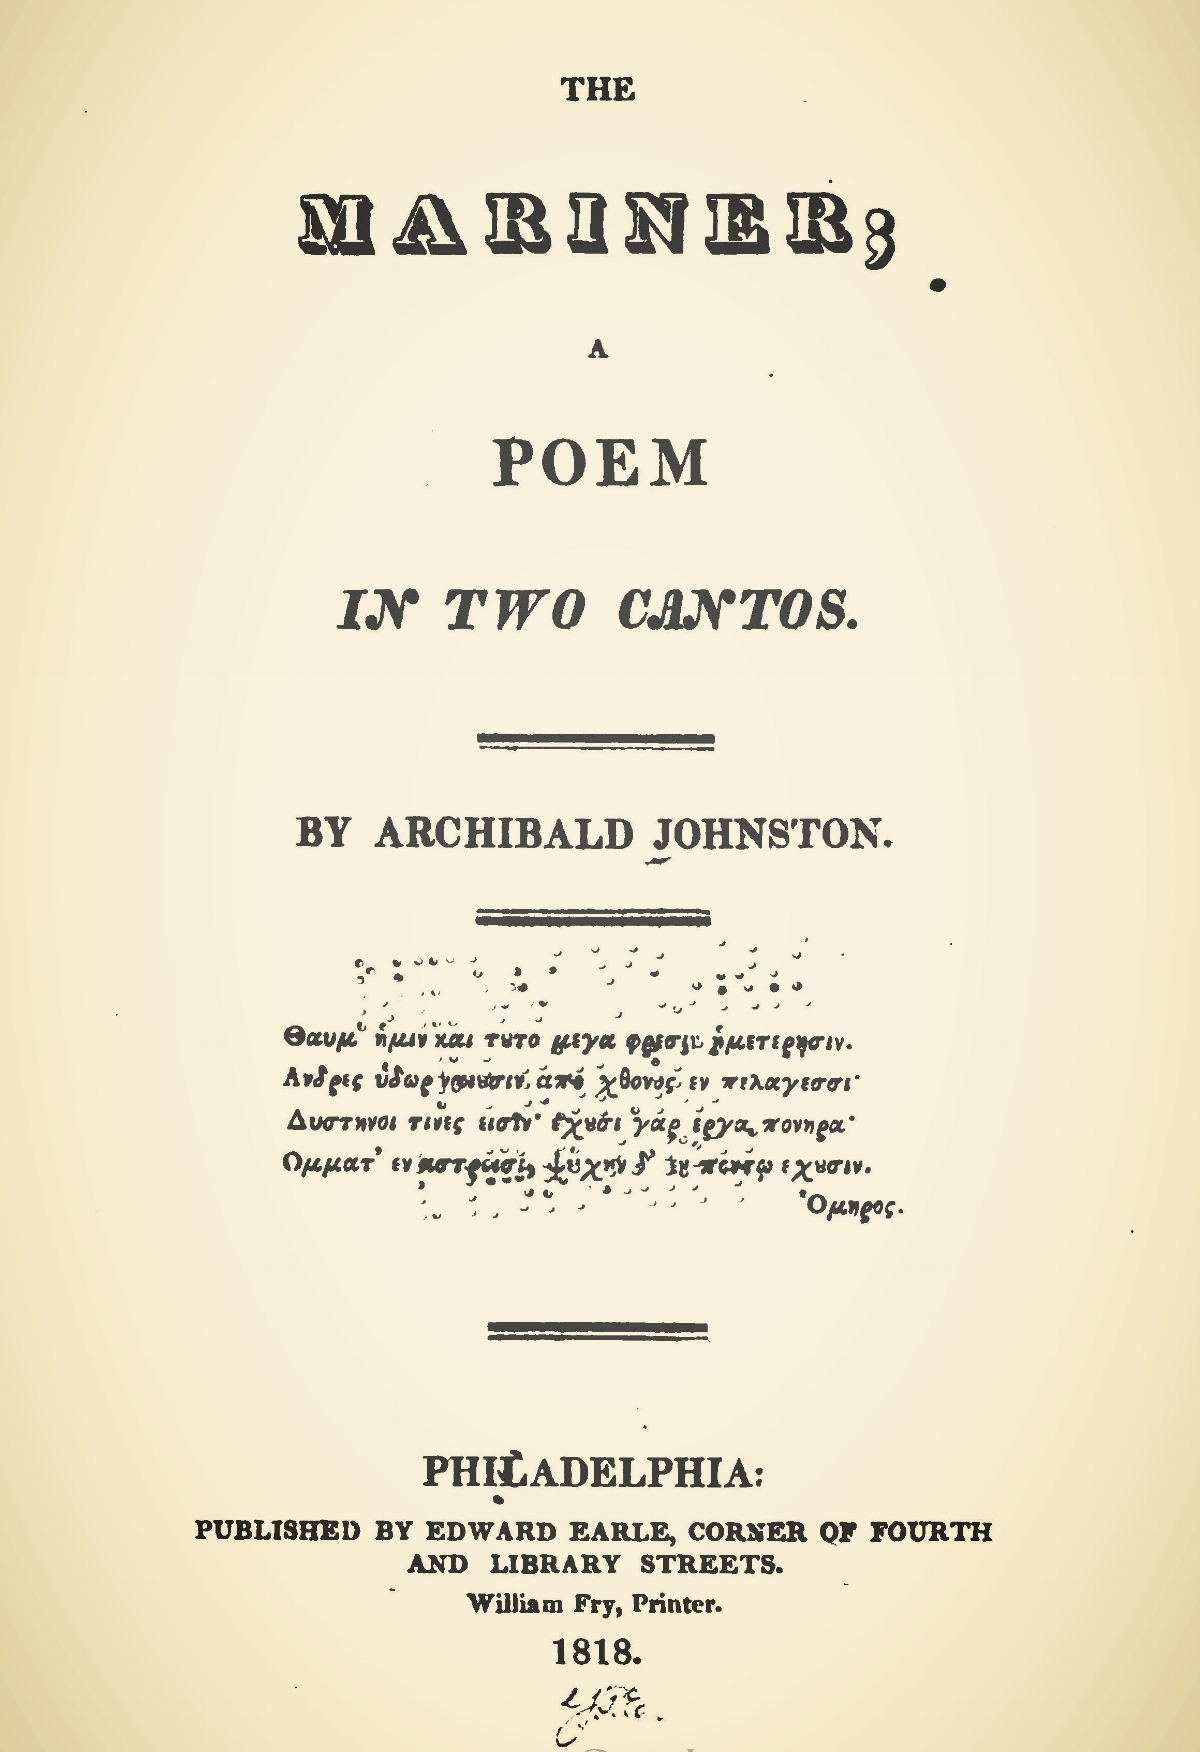 Johnston, Archibald, The Mariner Title Page.jpg